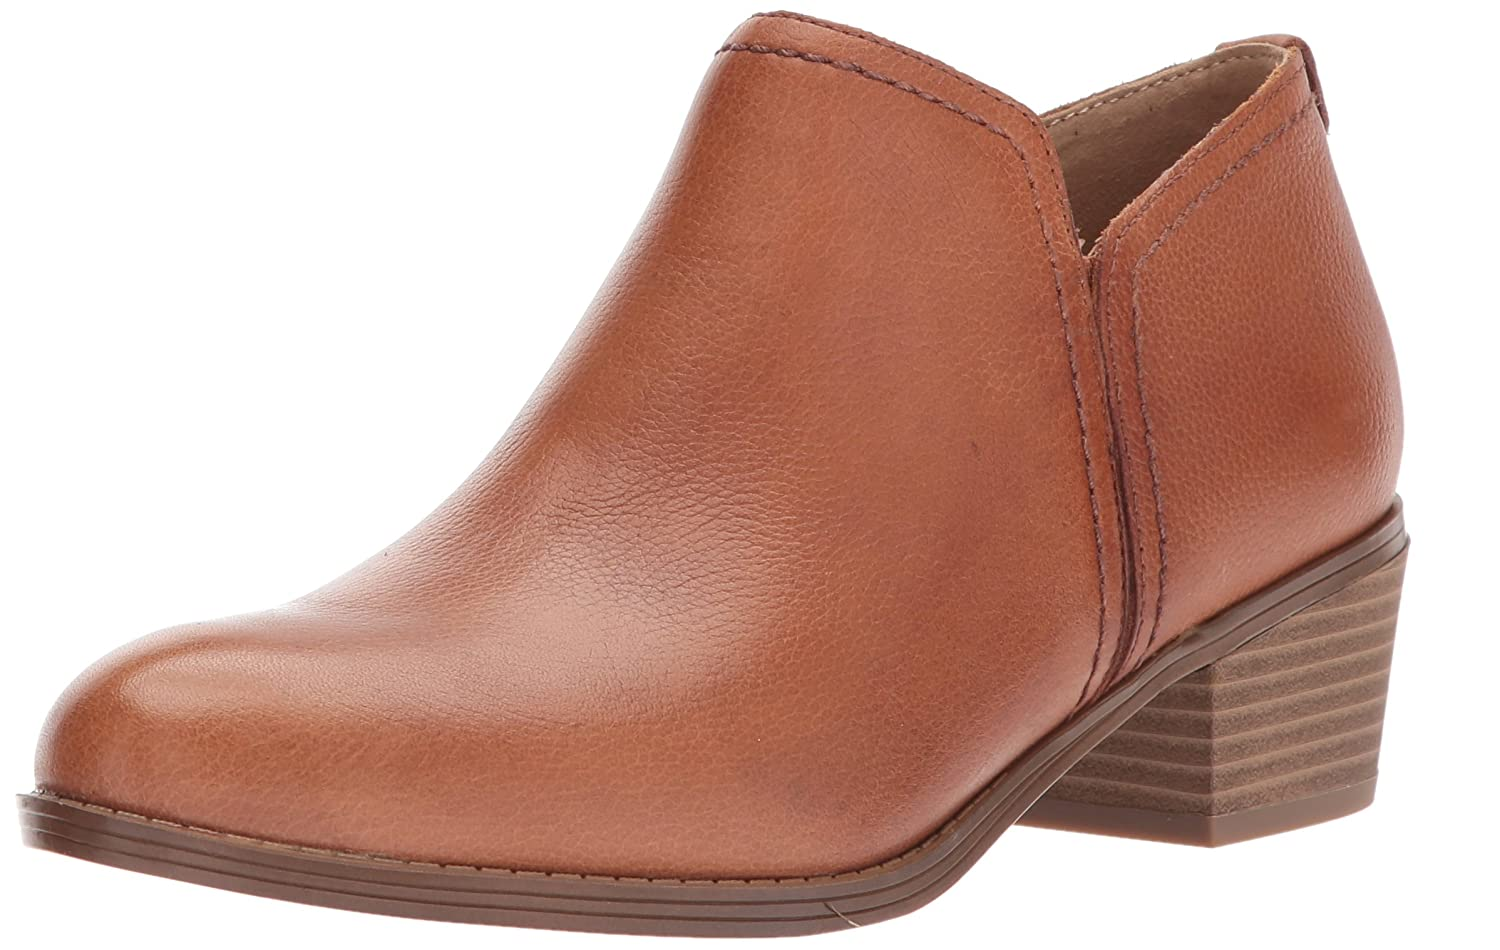 Naturalizer Women's Zarie Boot B01MR0LG84 8 N US|Saddle